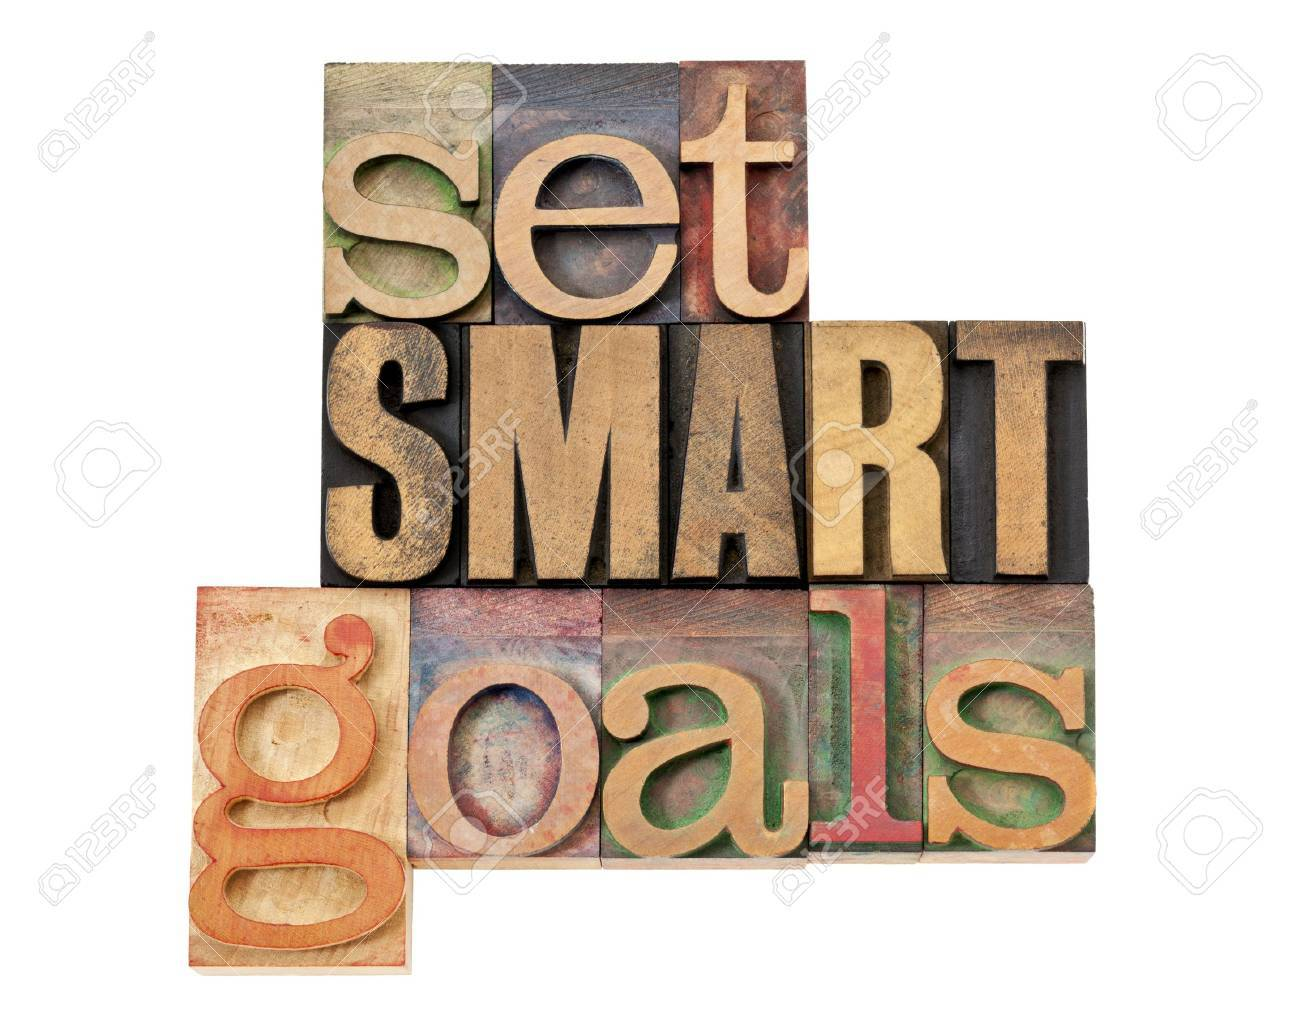 set SMART goals  - isolated text in vintage letterpress wood type Stock Photo - 14288568